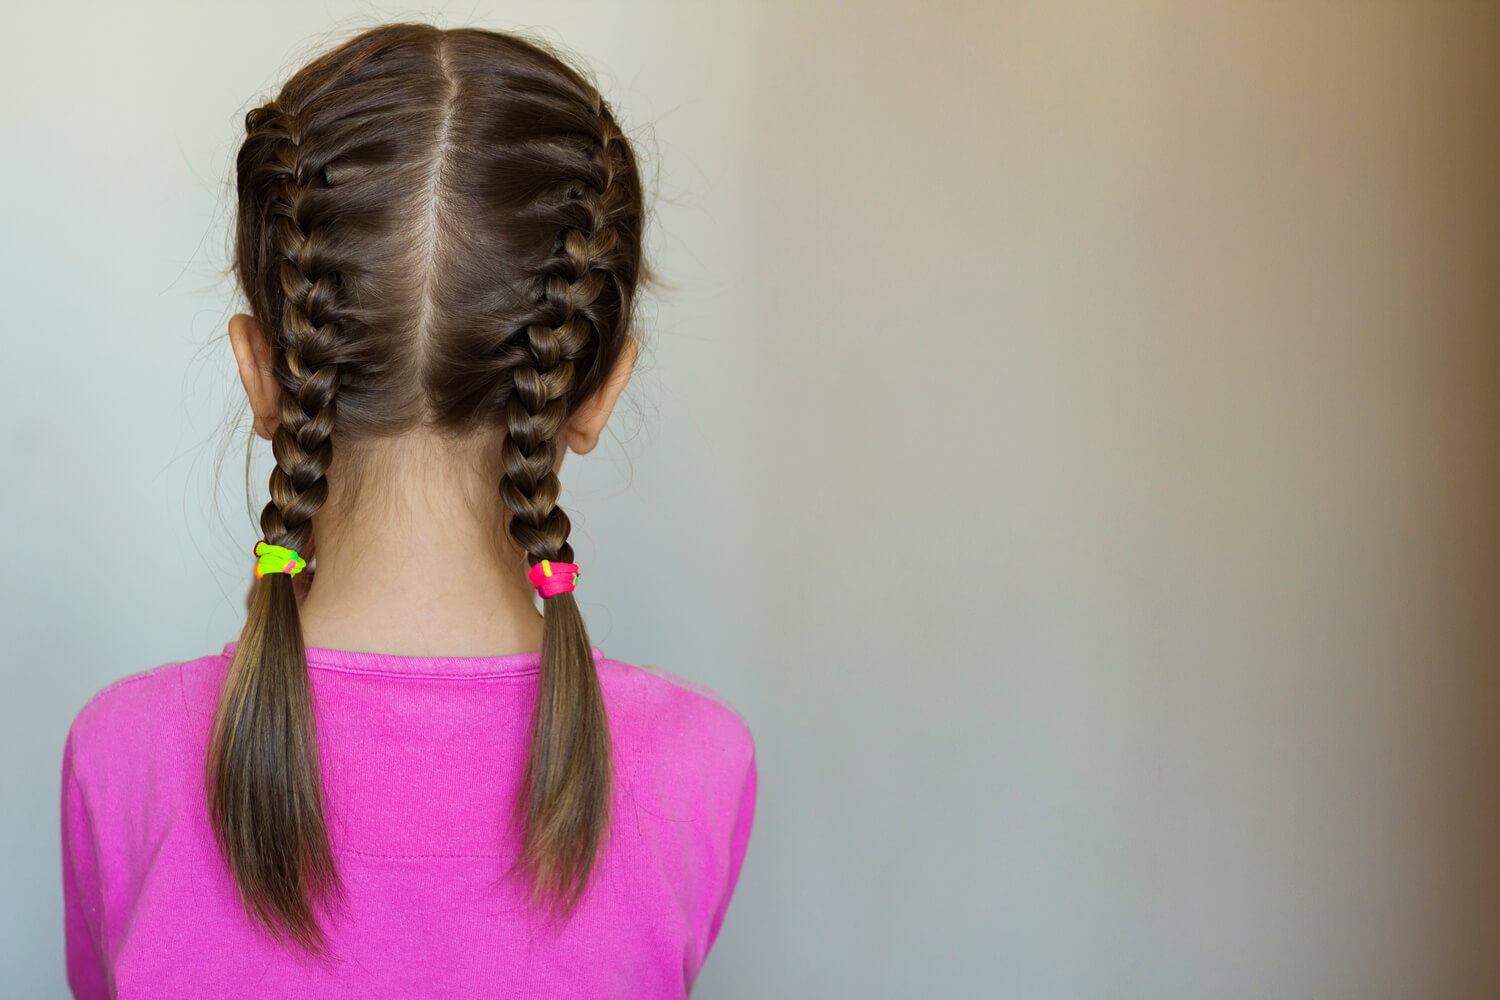 girl with pigtail braids hairstyle